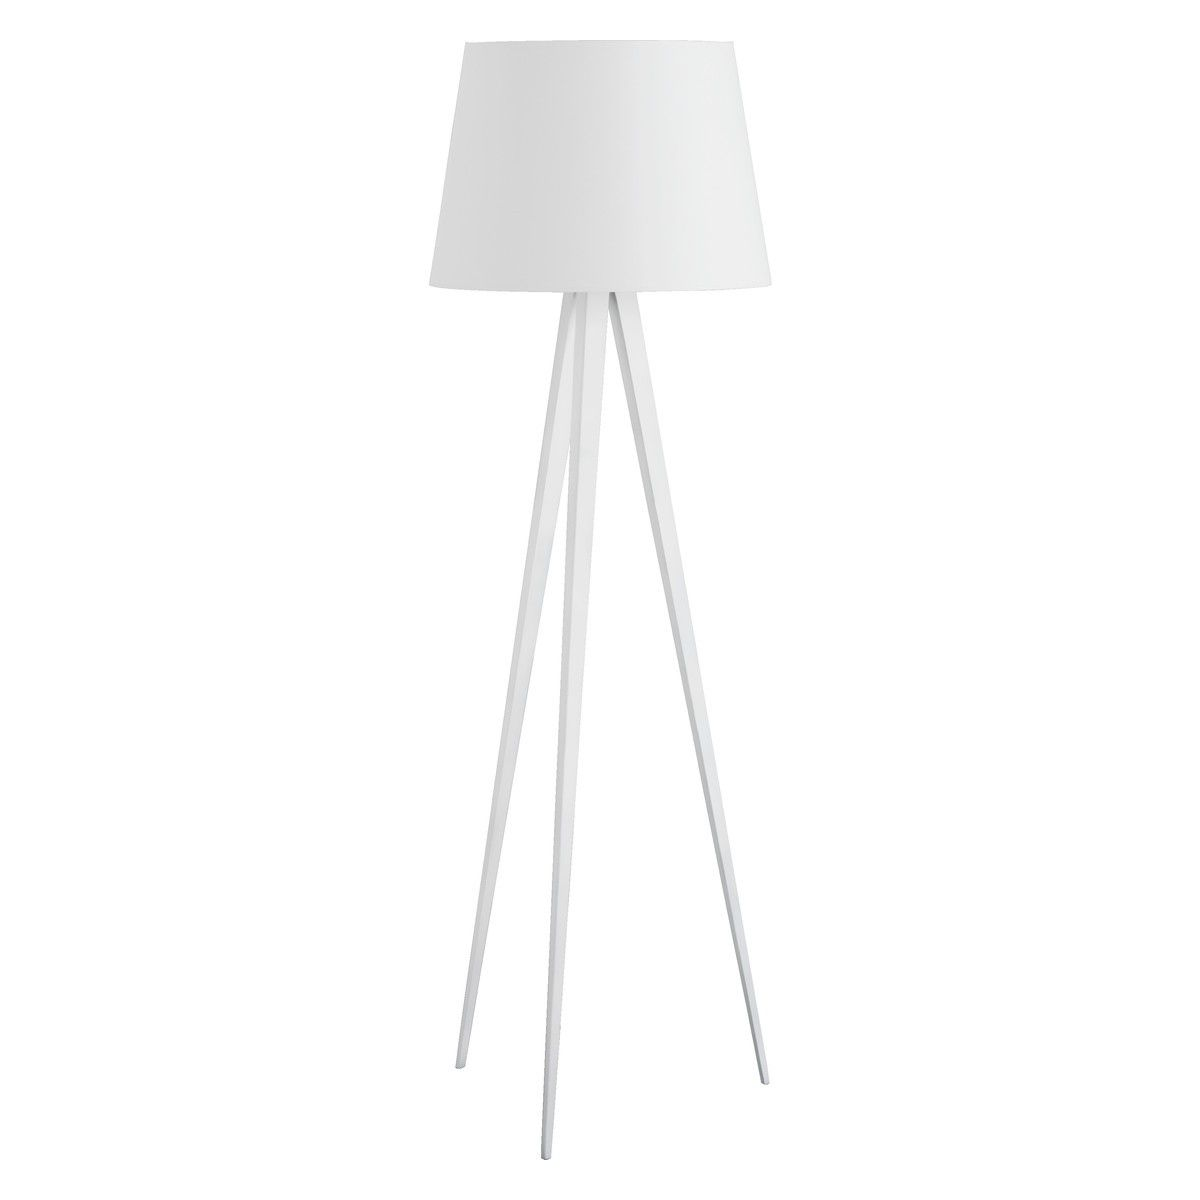 Yves white metal tripod floor lamp base studio style pinterest yves white metal tripod floor lamp base aloadofball Choice Image